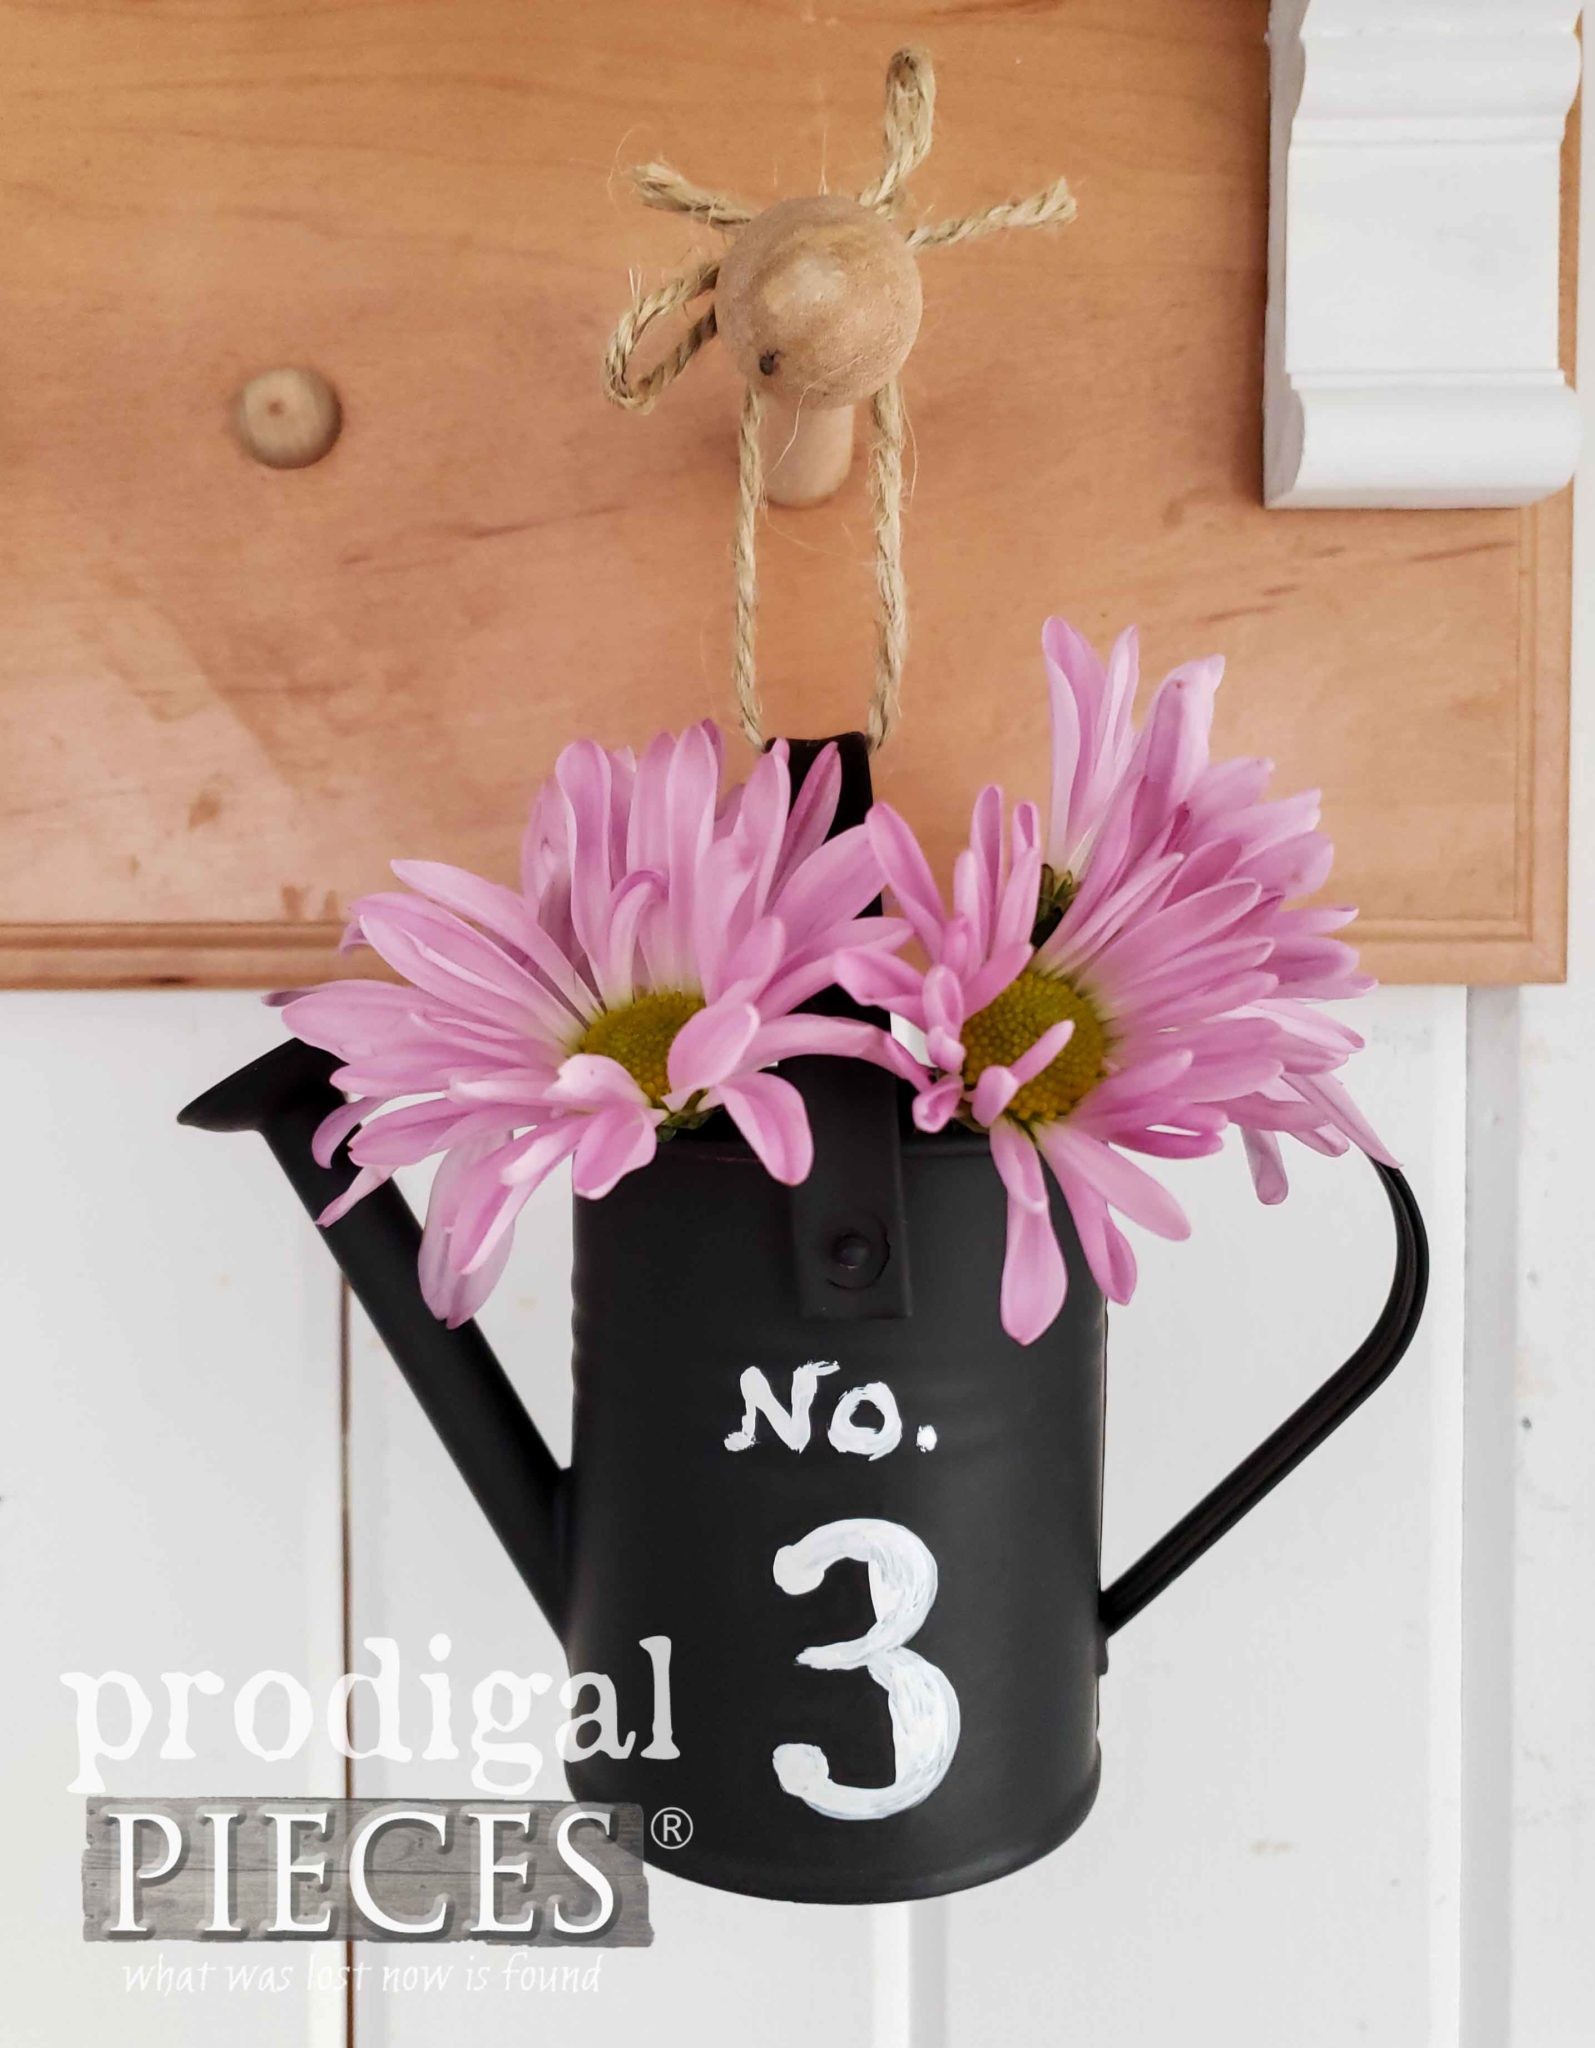 Miniature Watering Can with Pink Daisies by Larissa of Prodigal Pieces | prodigalpieces.com #prodigalpieces #diy #farmhouse #home #garden